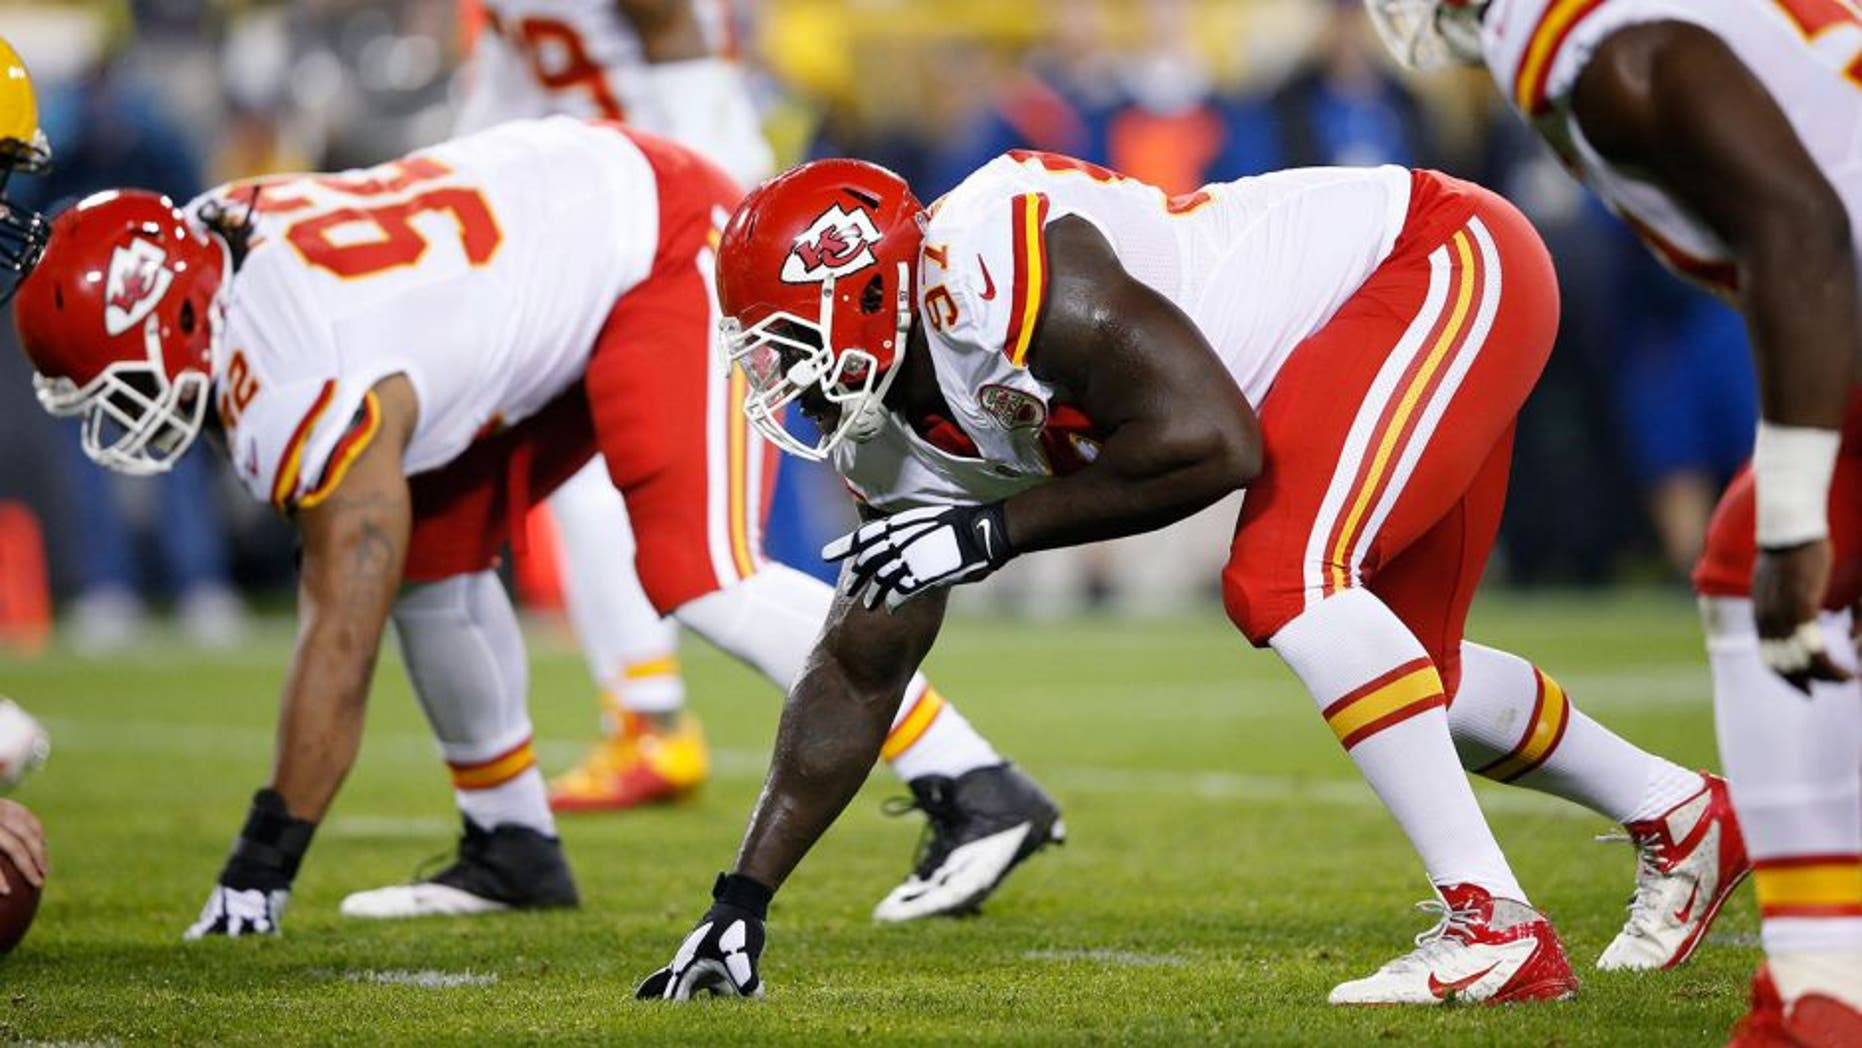 GREEN BAY, WI - SEPTEMBER 28: Allen Bailey #97 of the Kansas City Chiefs lines up against the Green Bay Packers during a game at Lambeau Field on September 28, 2015 in Green Bay, Wisconsin. The Packers defeated the Chiefs 38-28. (Photo by Joe Robbins/Getty Images)